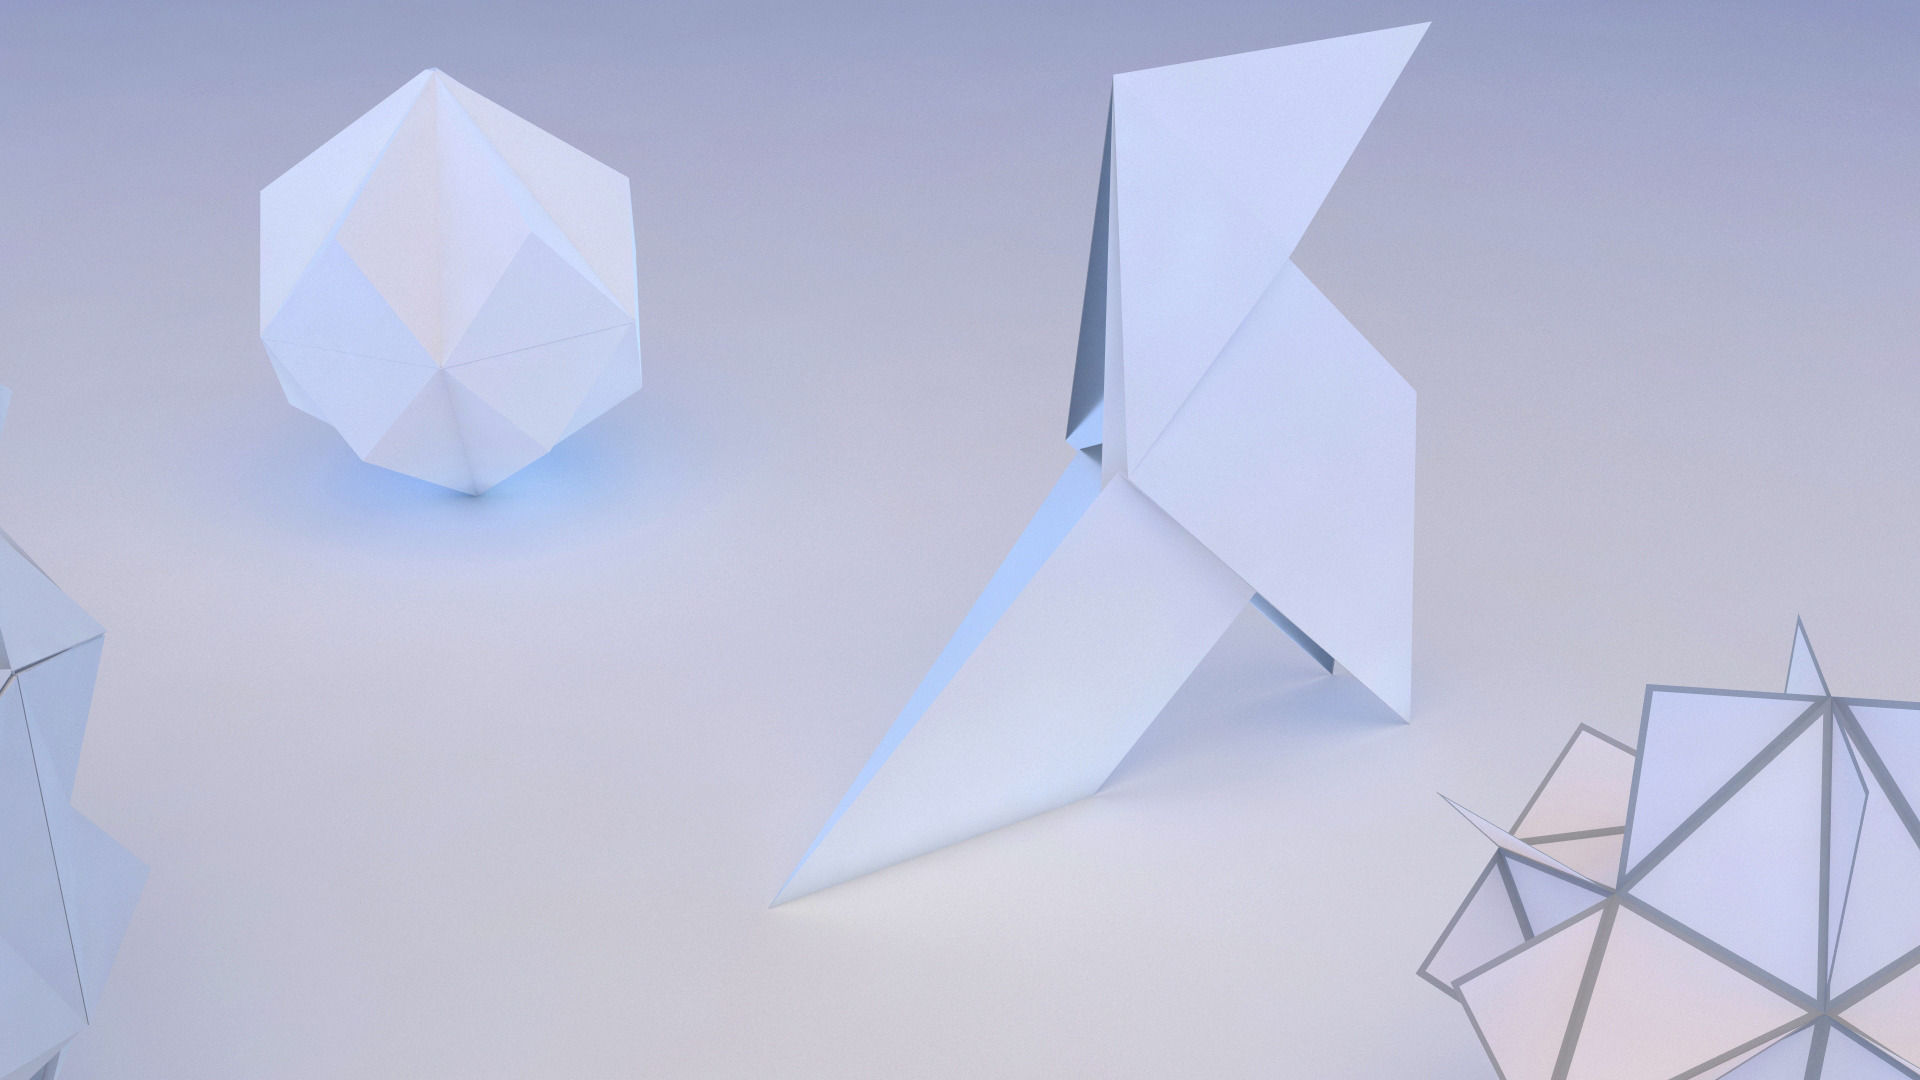 Origami Geometric 3D Model MAX OBJ 3DS FBX MTL | CGTrader.com - photo#27